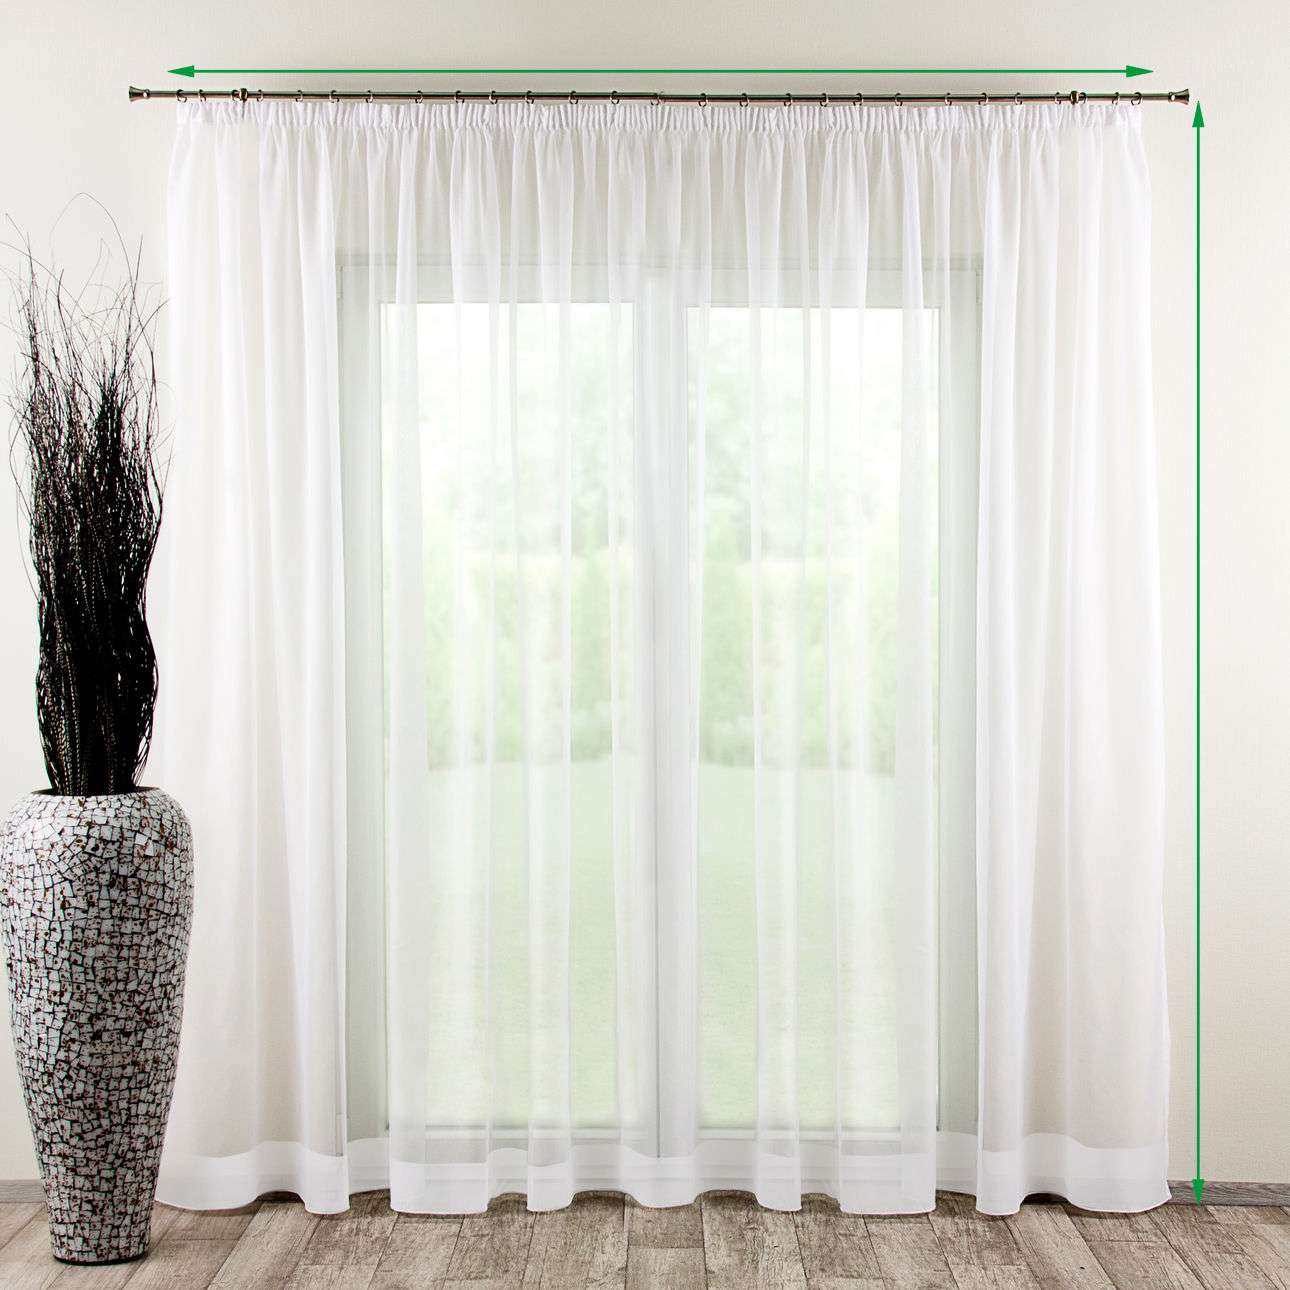 Pencil pleat voile/net curtain in collection Voile, fabric: 900-00